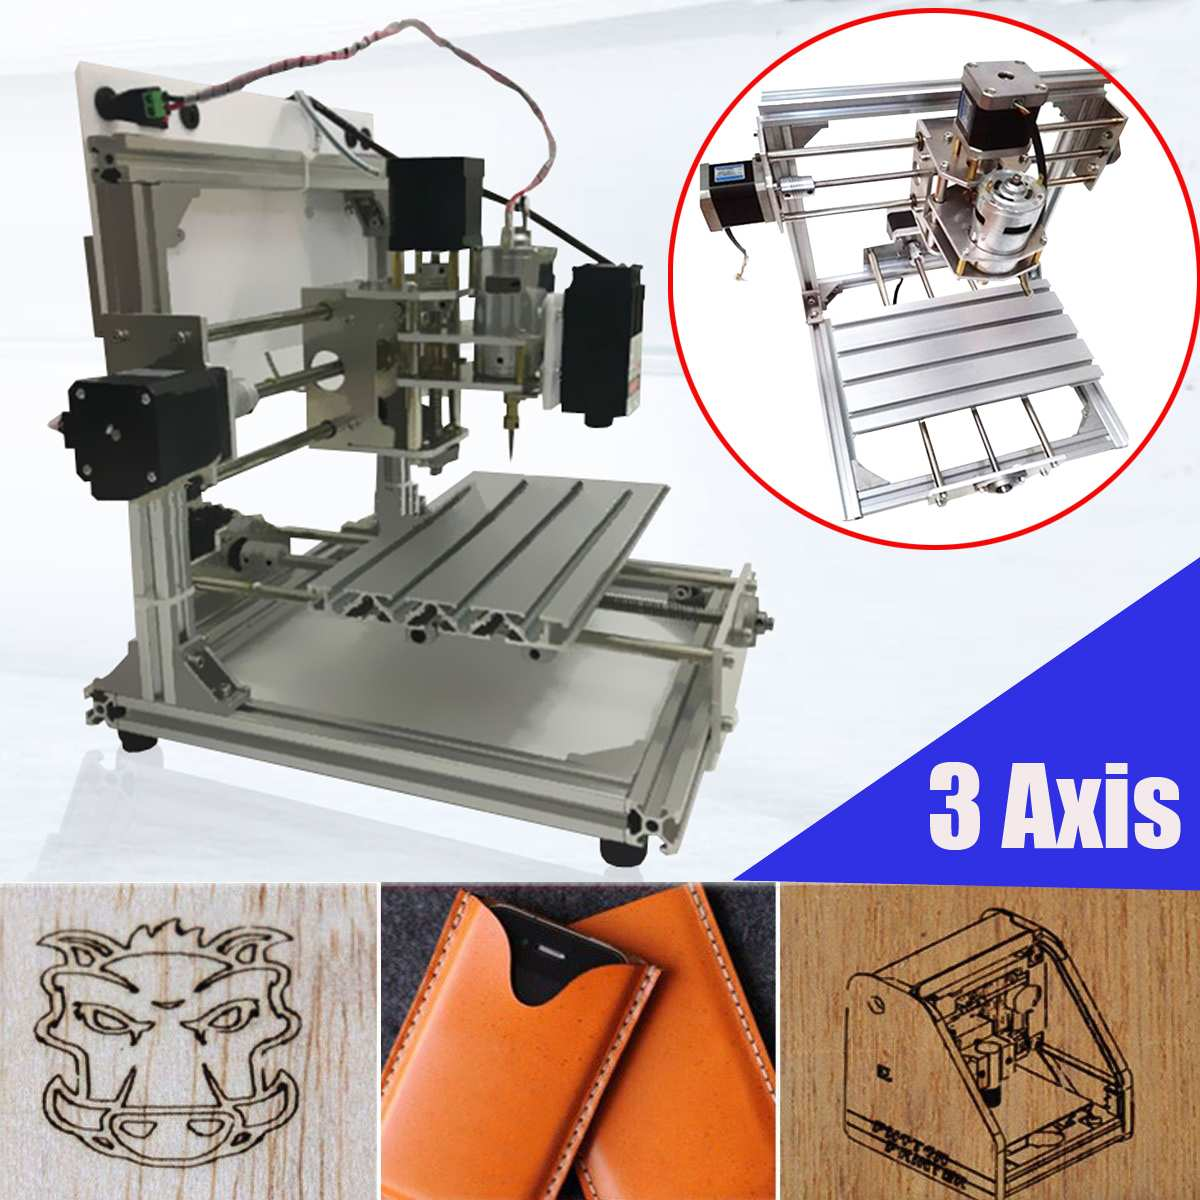 High Quality CNC 3 Axis 2020 Router DIY Wood Engraving Carving PCB Milling Machine DIY GRBL Wood Router Laser Engraving